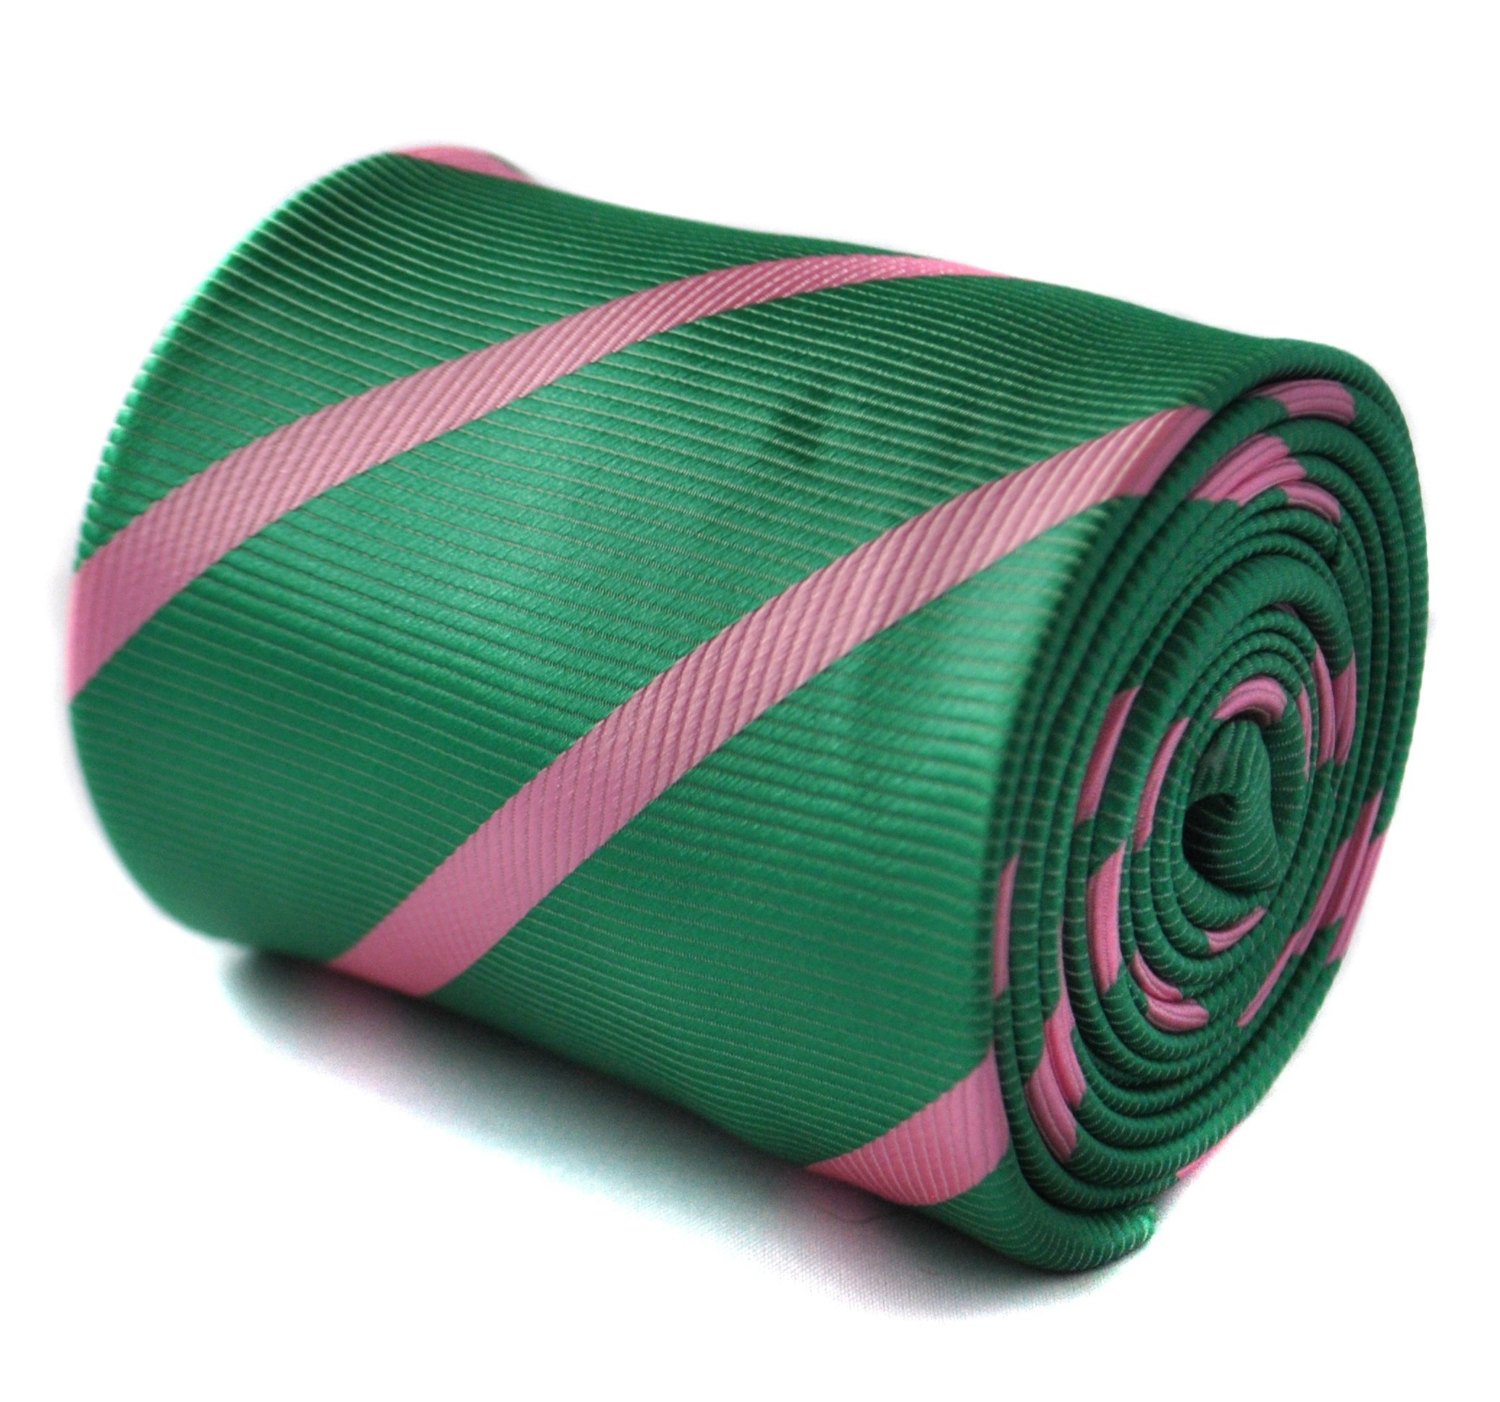 dark green with pink stripe tie with floral design to the rear by Frederick Thom